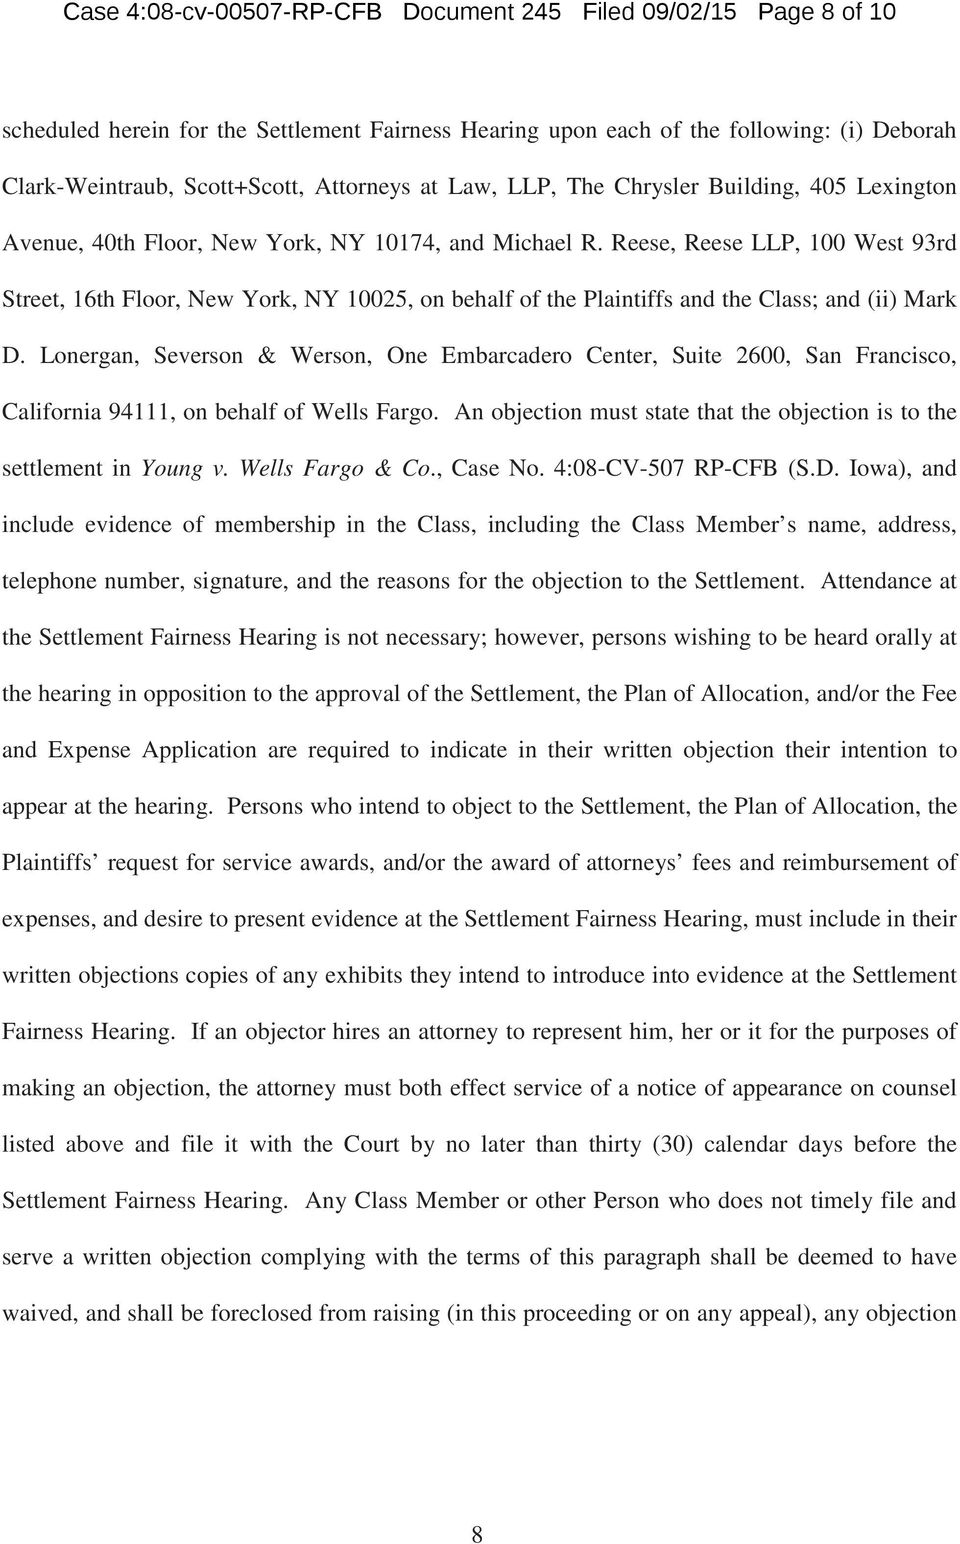 Reese, Reese LLP, 100 West 93rd Street, 16th Floor, New York, NY 10025, on behalf of the Plaintiffs and the Class; and (ii) Mark D.